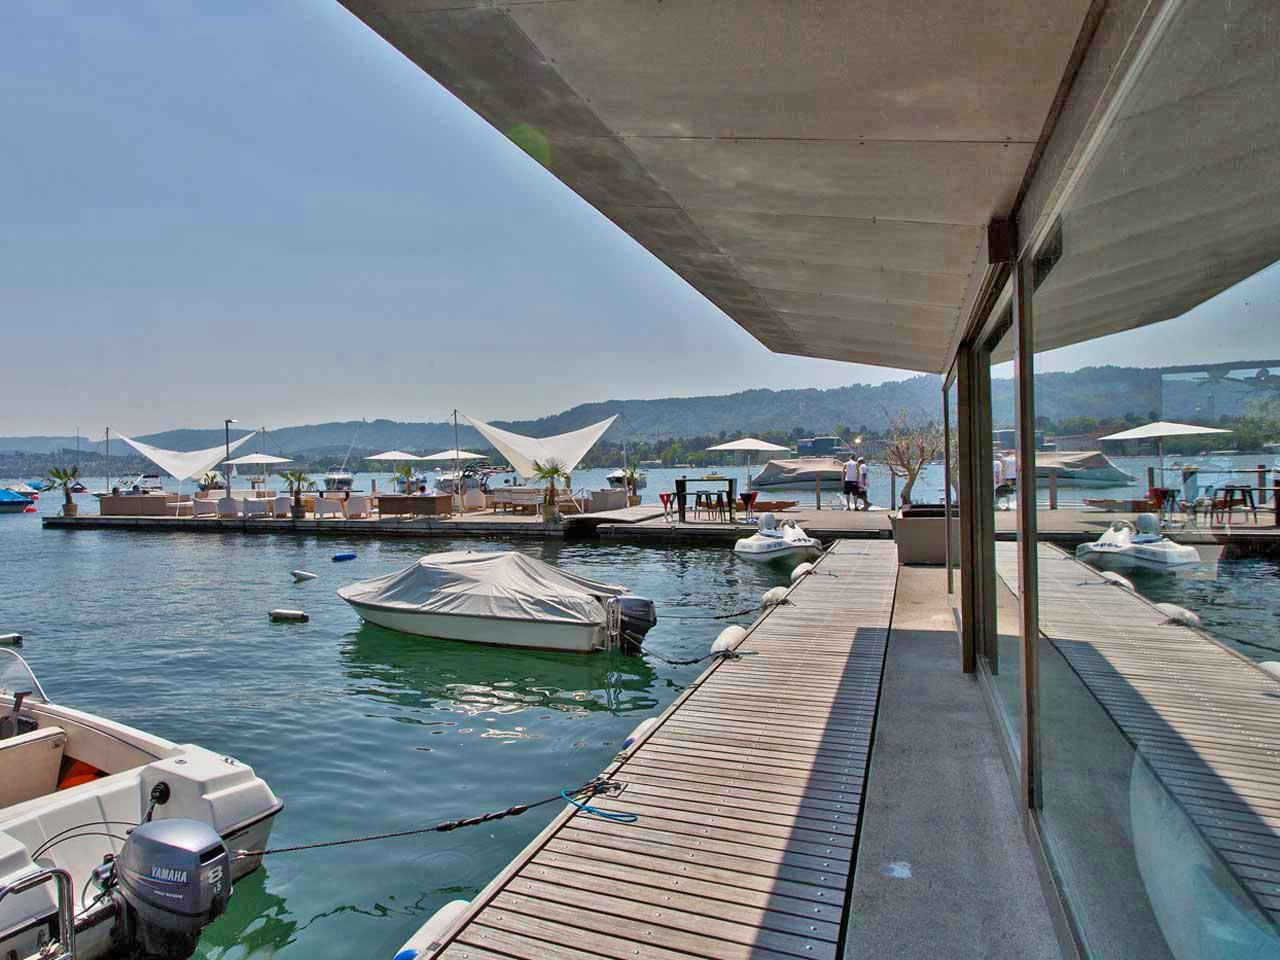 Lago: boat rental and lounge on Lake Zurich